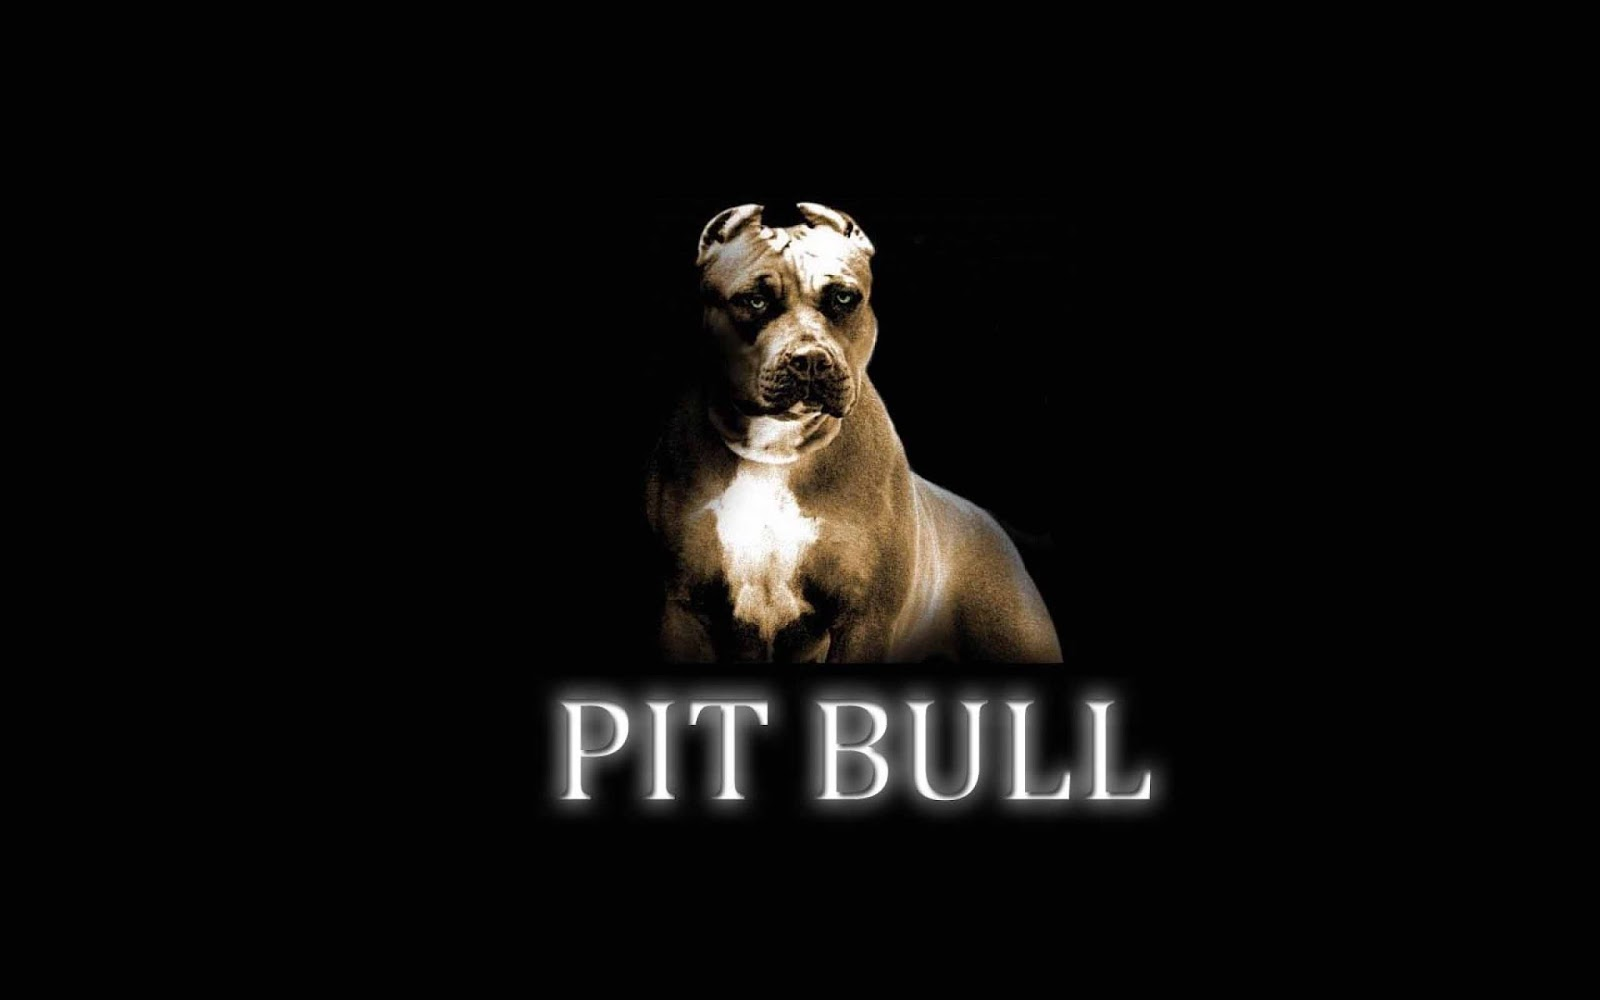 Dog Pitbull Wallpaper